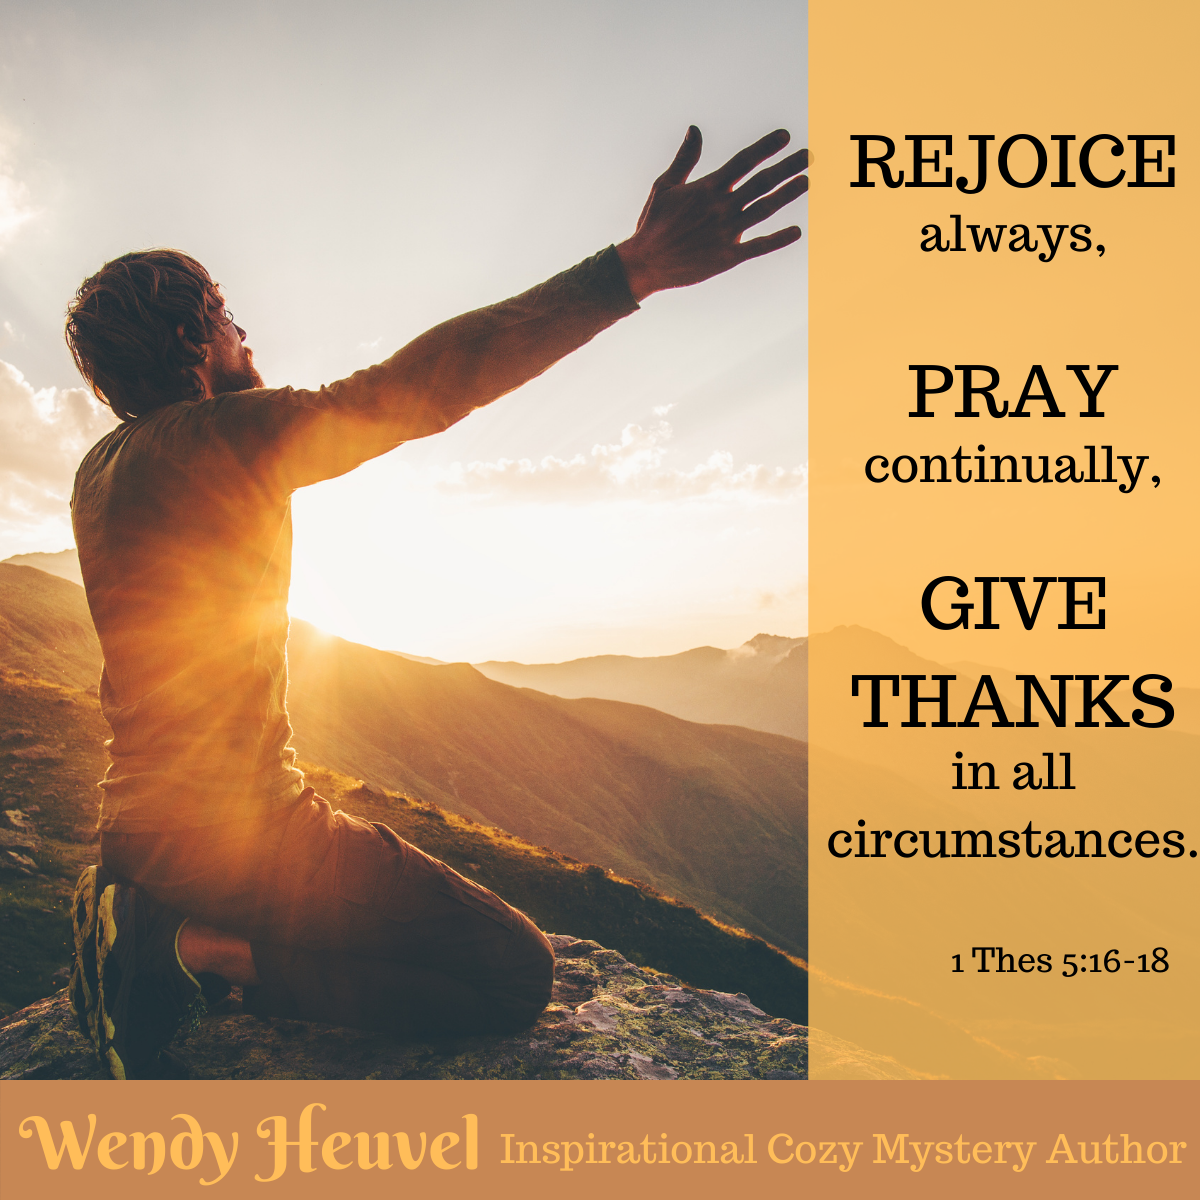 1 Thes 5:16-18 Rejoice Always, Pray Continually, Give Thanks